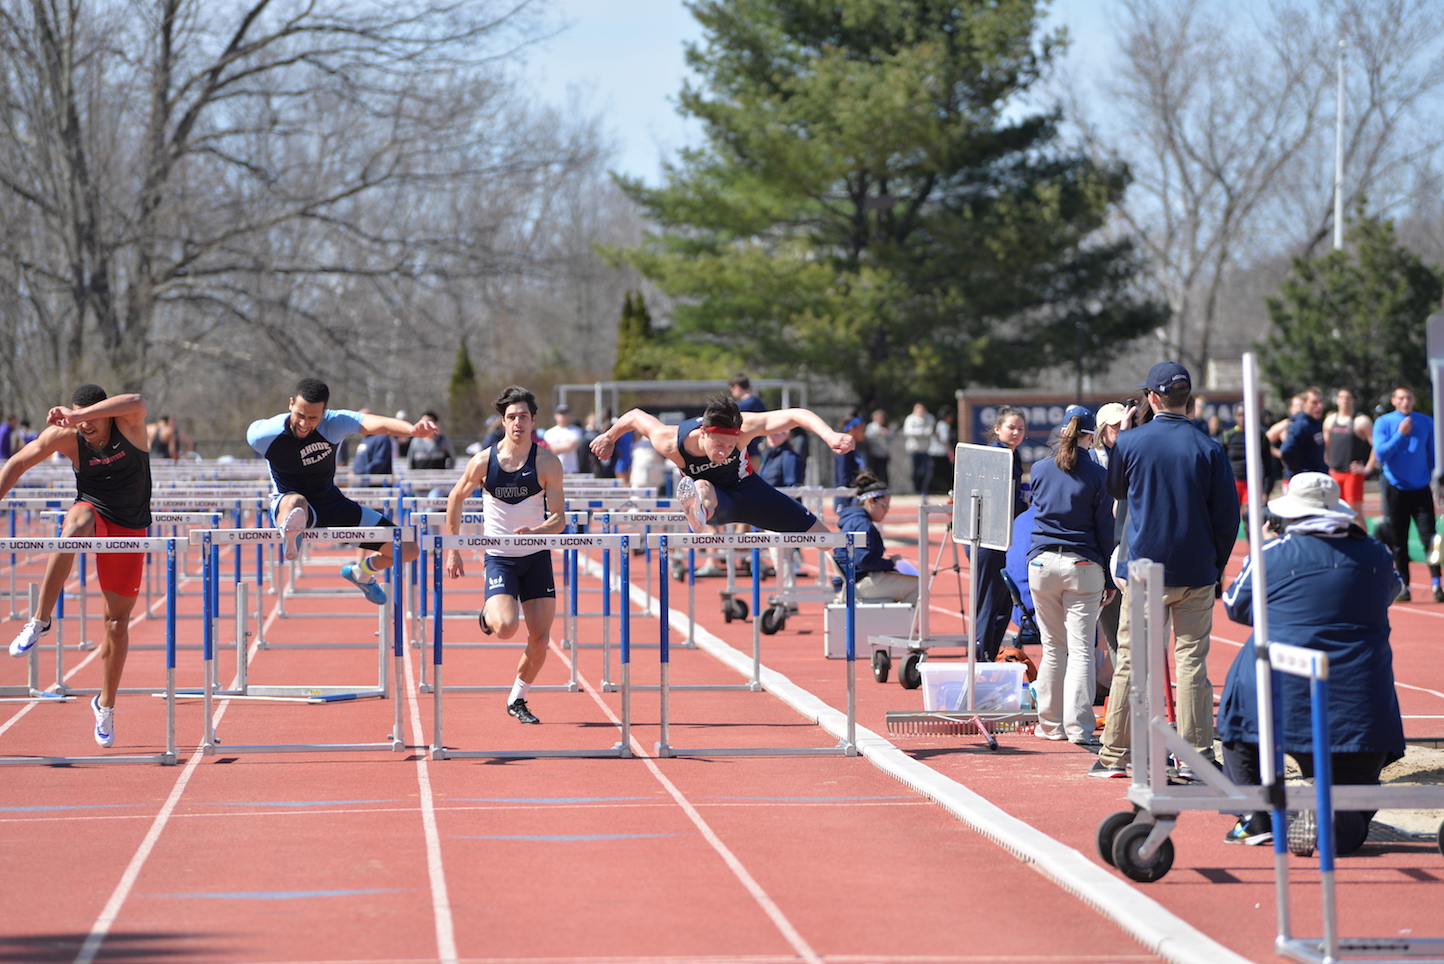 UConn men's track and field traveled to Kingston, RI last Friday to take on URI in a one-on-one matchup before next week's American Championship. (File photo/The Daily Campus)